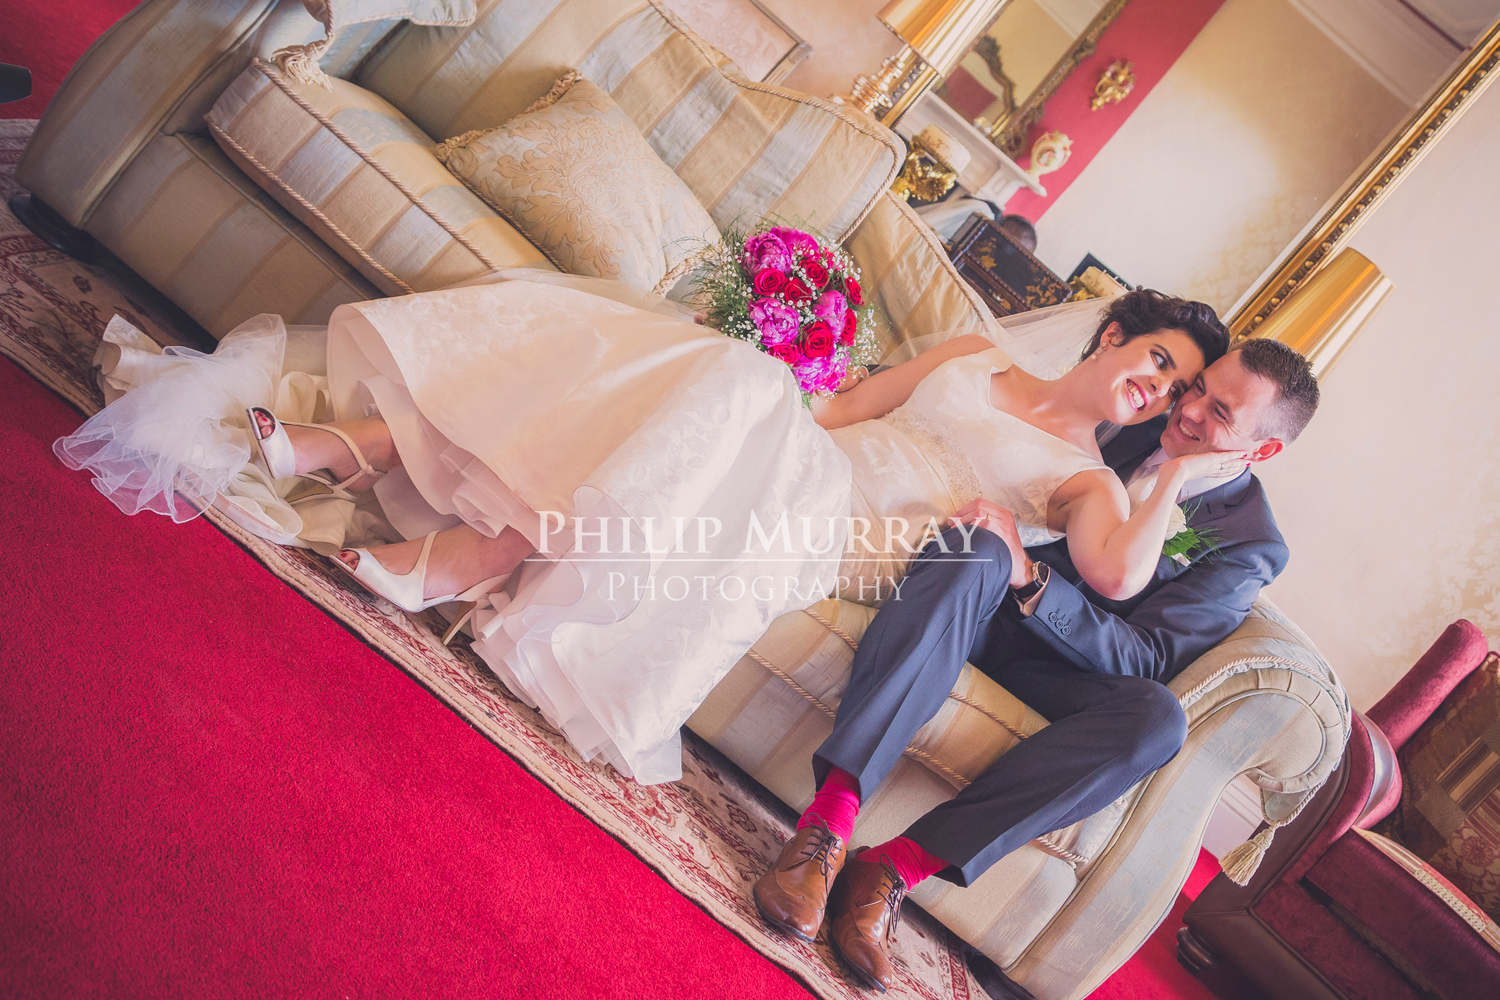 Wedding_A&S_Couple_Bride_Groom_Siting_Couch_Laughing_Philip_Murray_Photography_Dublin